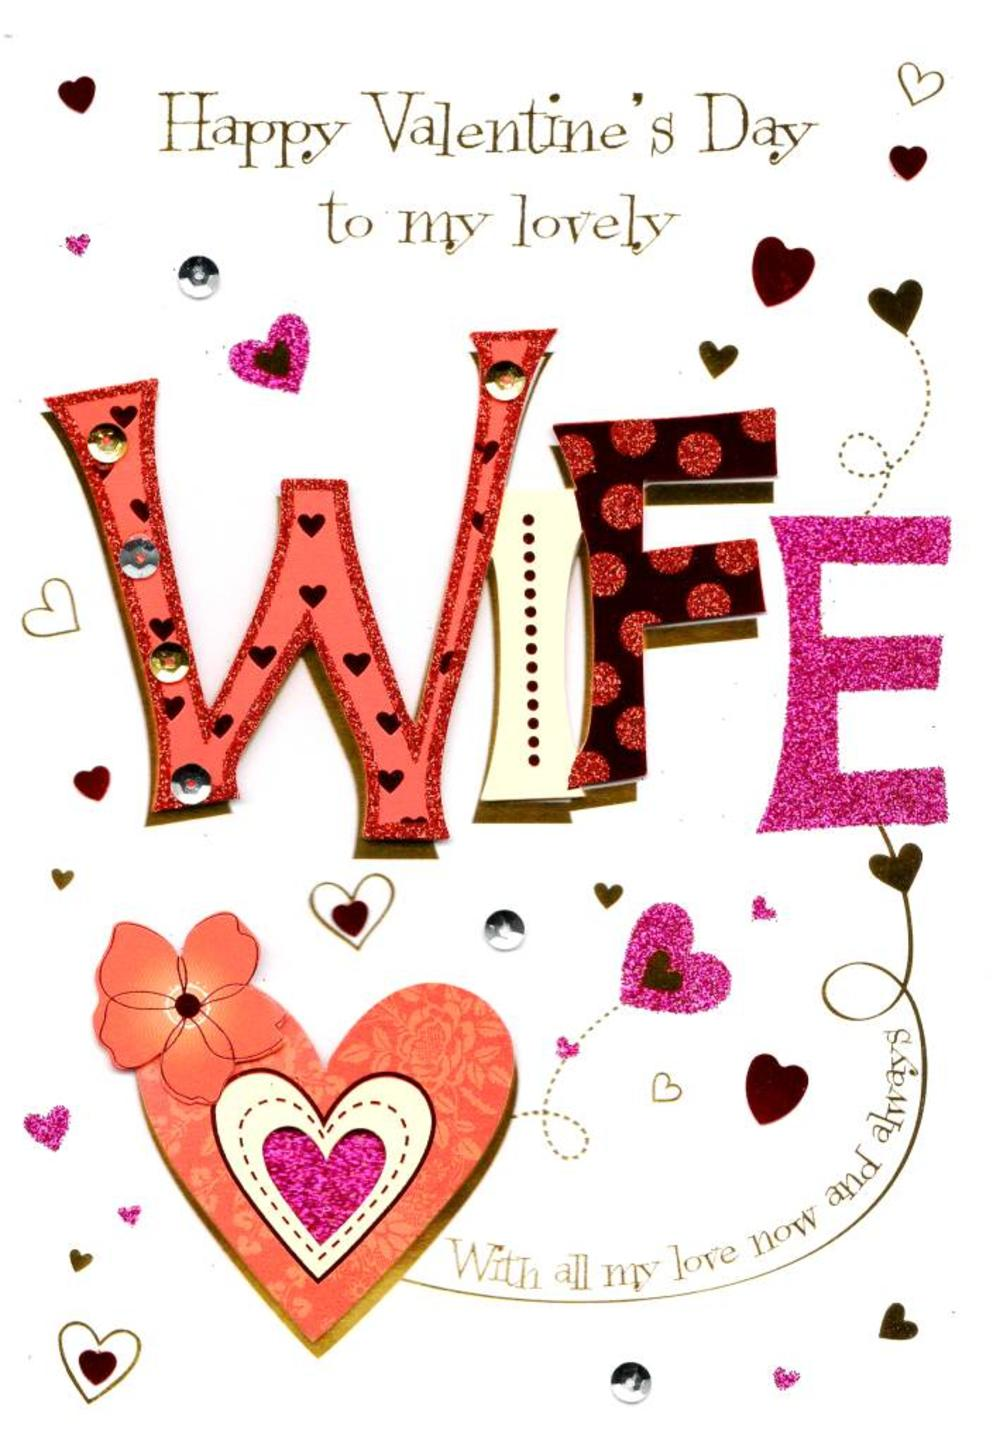 Lovely wife valentines day greeting card cards love kates lovely wife valentines day greeting card m4hsunfo